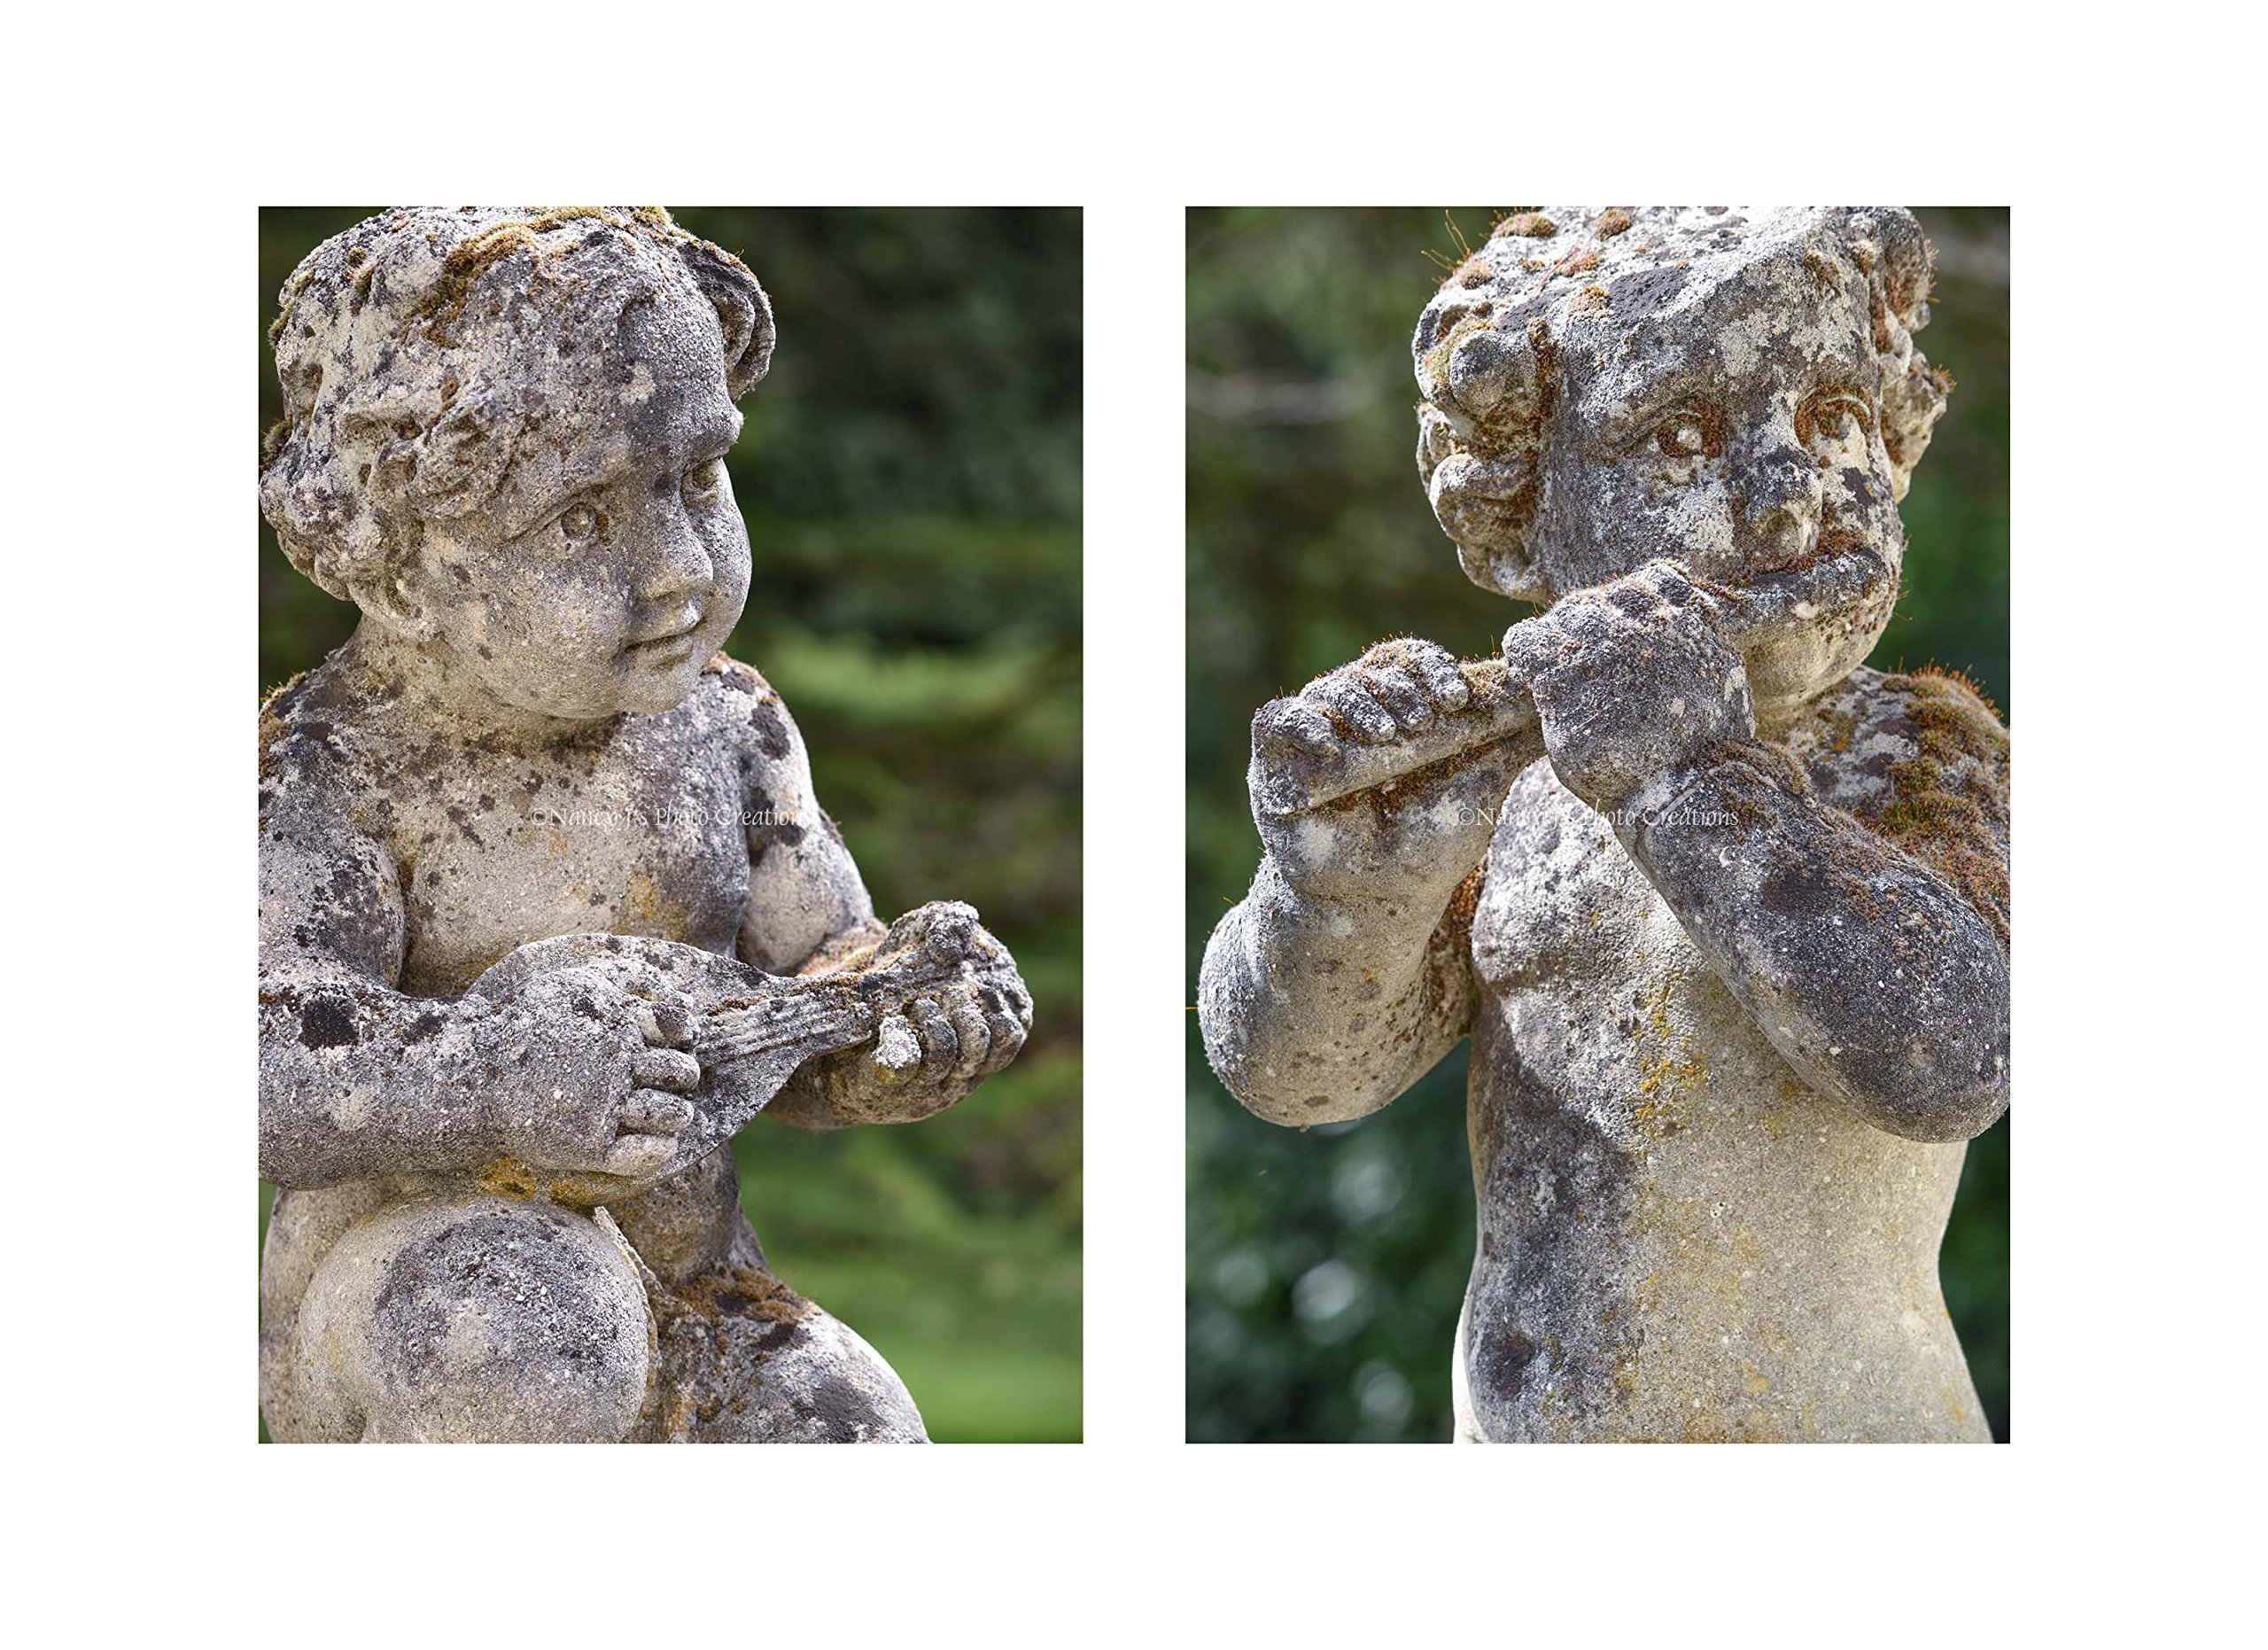 Cherub Sculptures Large Unframed PHOTOGRAPHIC PRINT English Garden Statue Photography Music Diptych Classic Art Edwardian Wall Decor Green Grey Matching Photo Set of Two 16x20 16x24 20x30